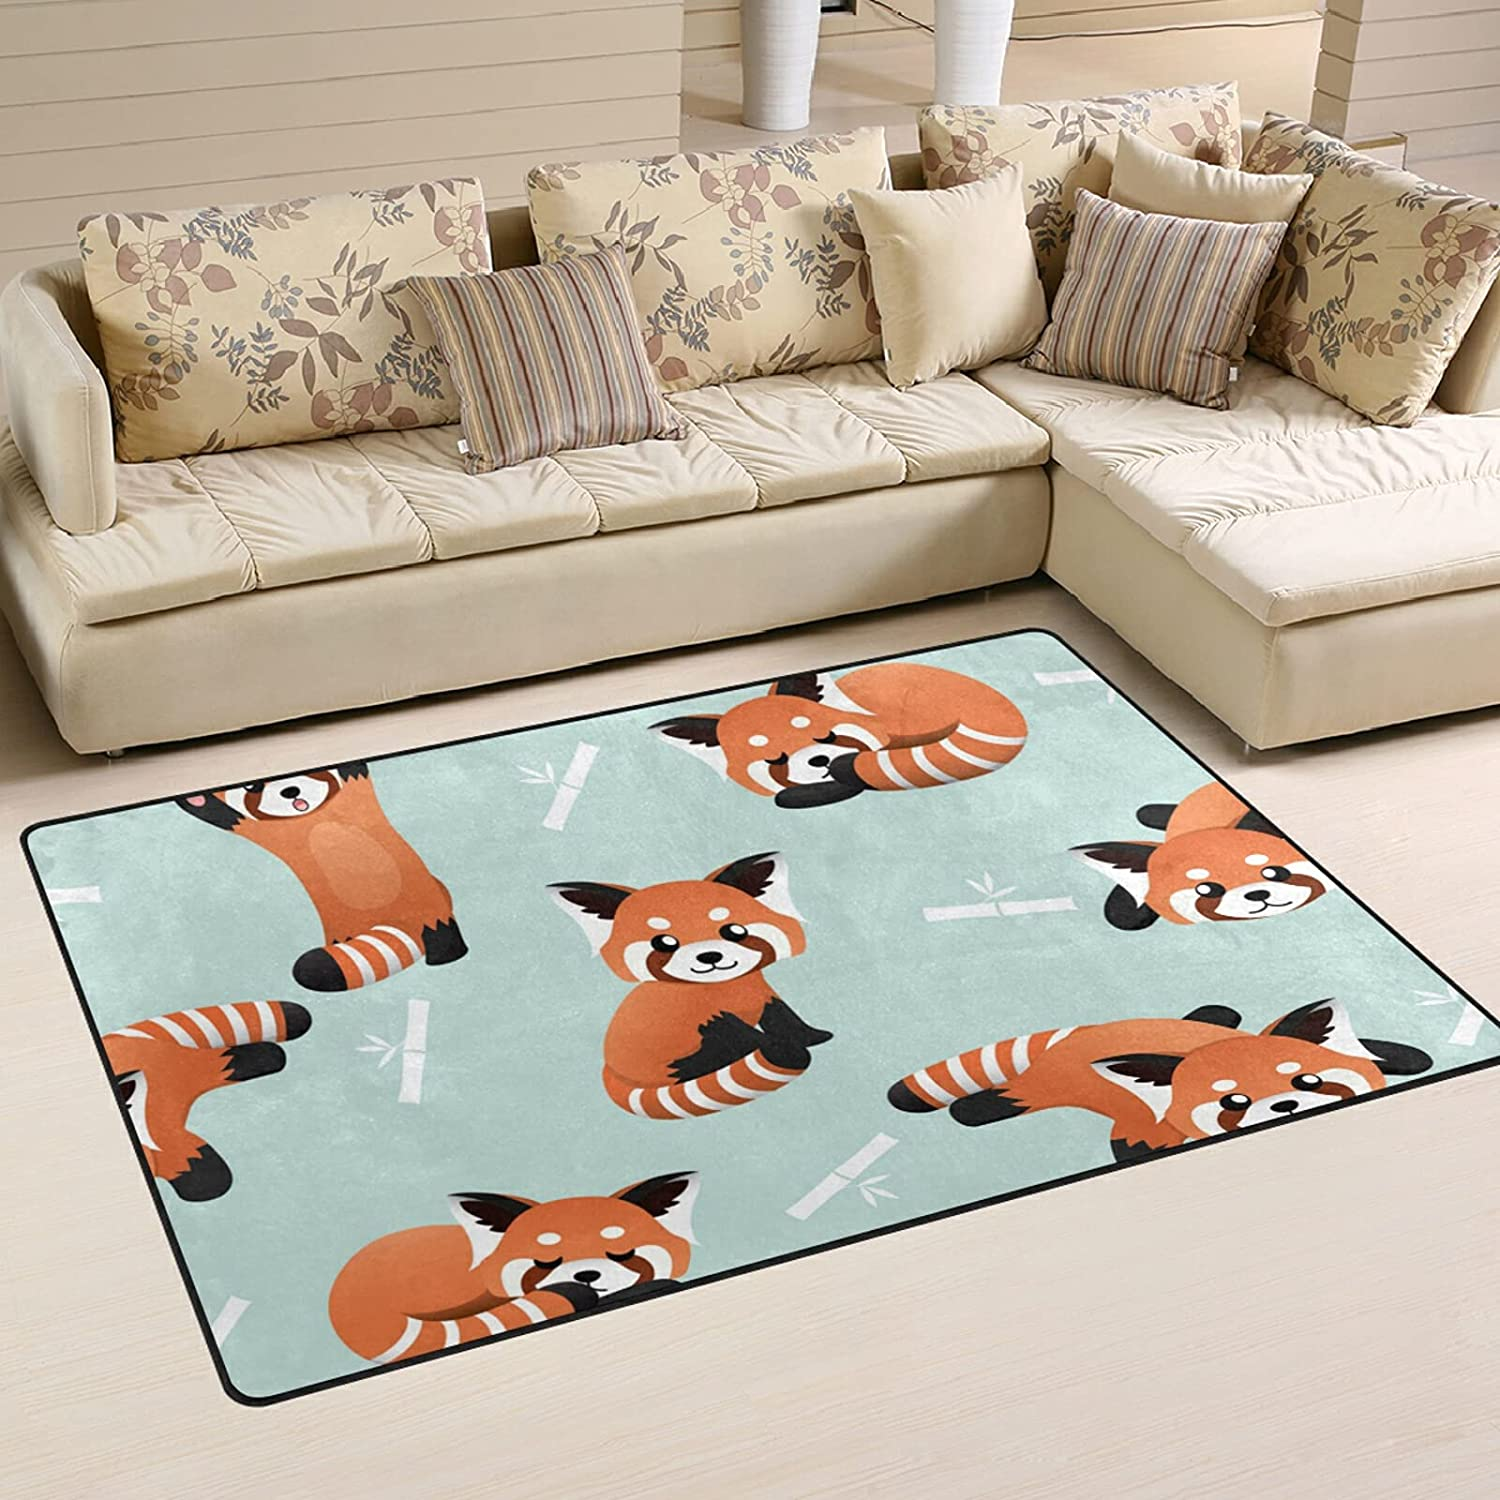 Cute 2021 model Red Panda Bamboo Large Soft Nursery Area Rug Playmat New Free Shipping M Rugs